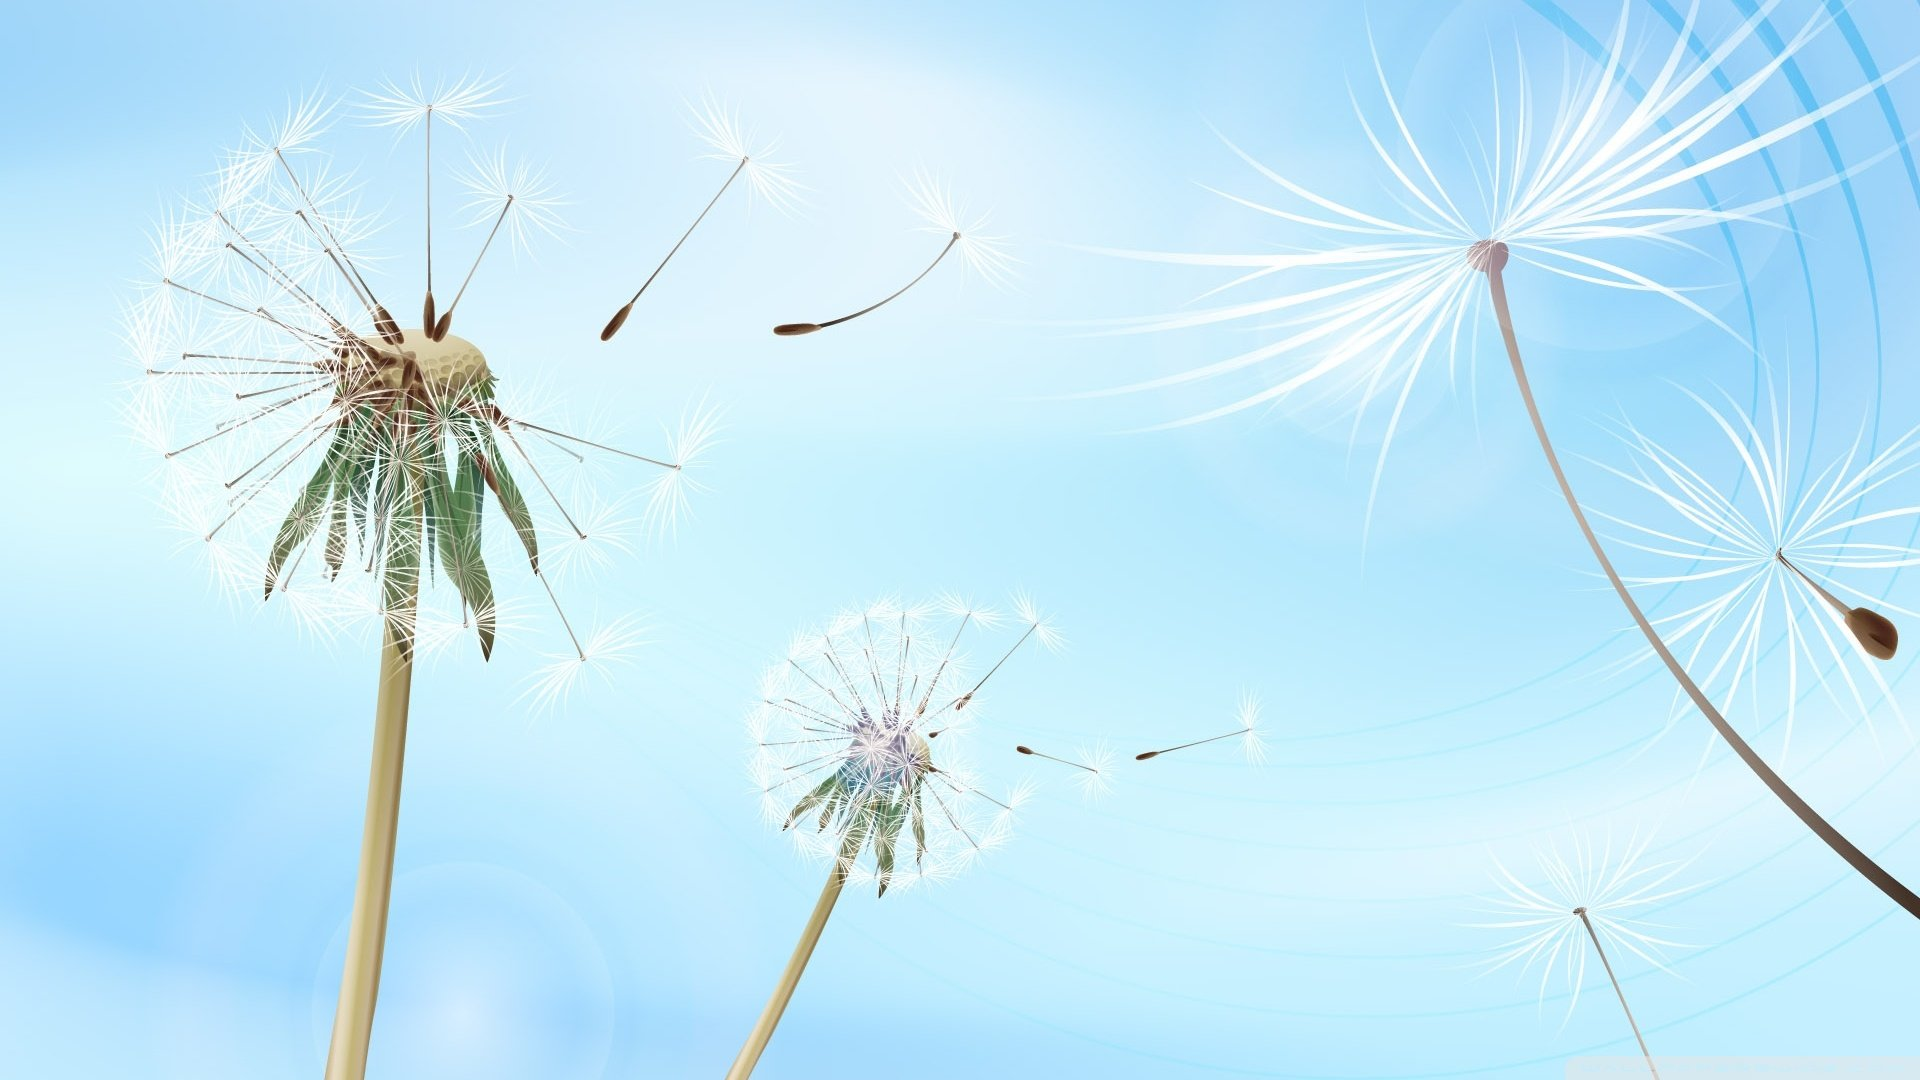 Blowing Dandelions Wallpaper 1920x1080 Blowing, Dandelions